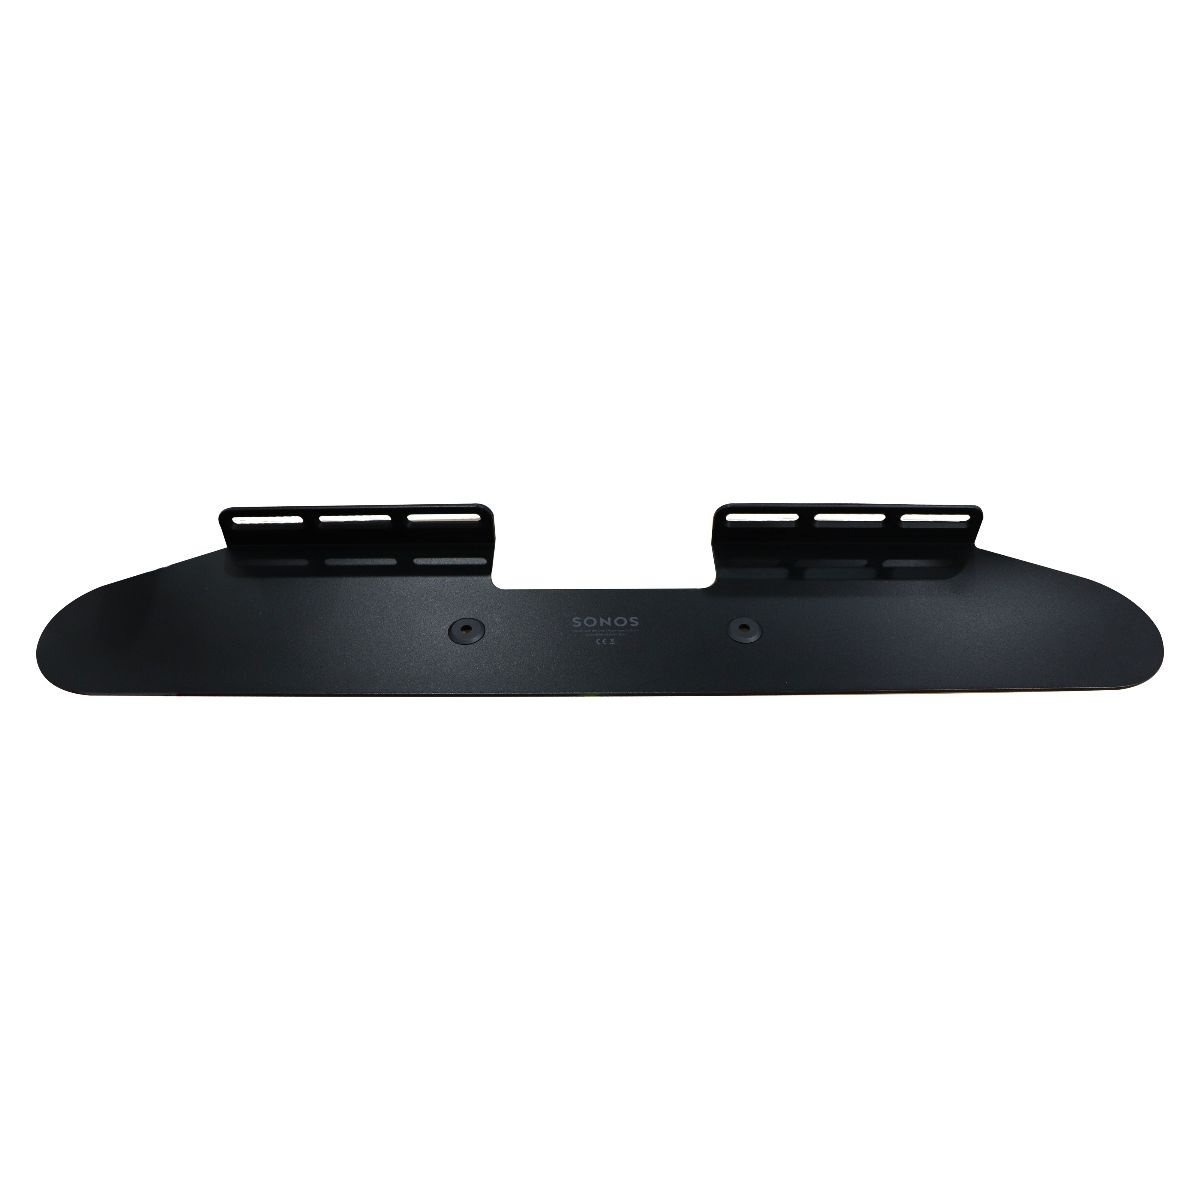 Sonos Wall Mount for Sonos Beam SoundBar - Black (BM1WMWW1BLK)